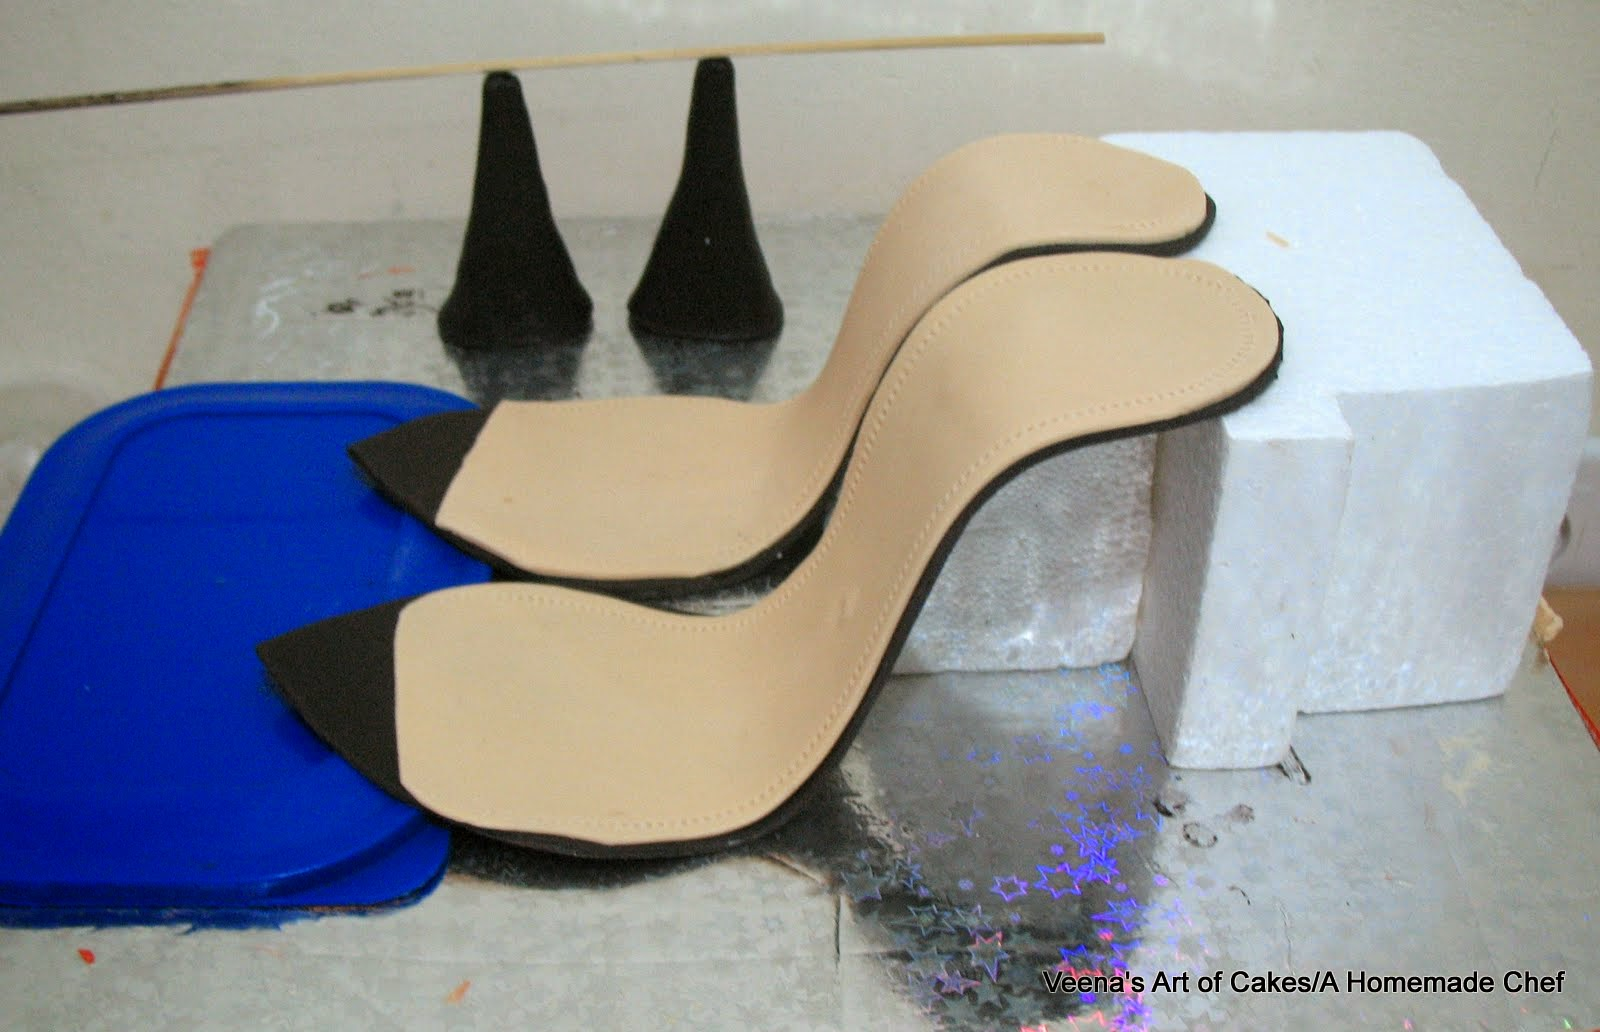 How to make a Gum Paste Stiletto Shoe  Veena Azmanov